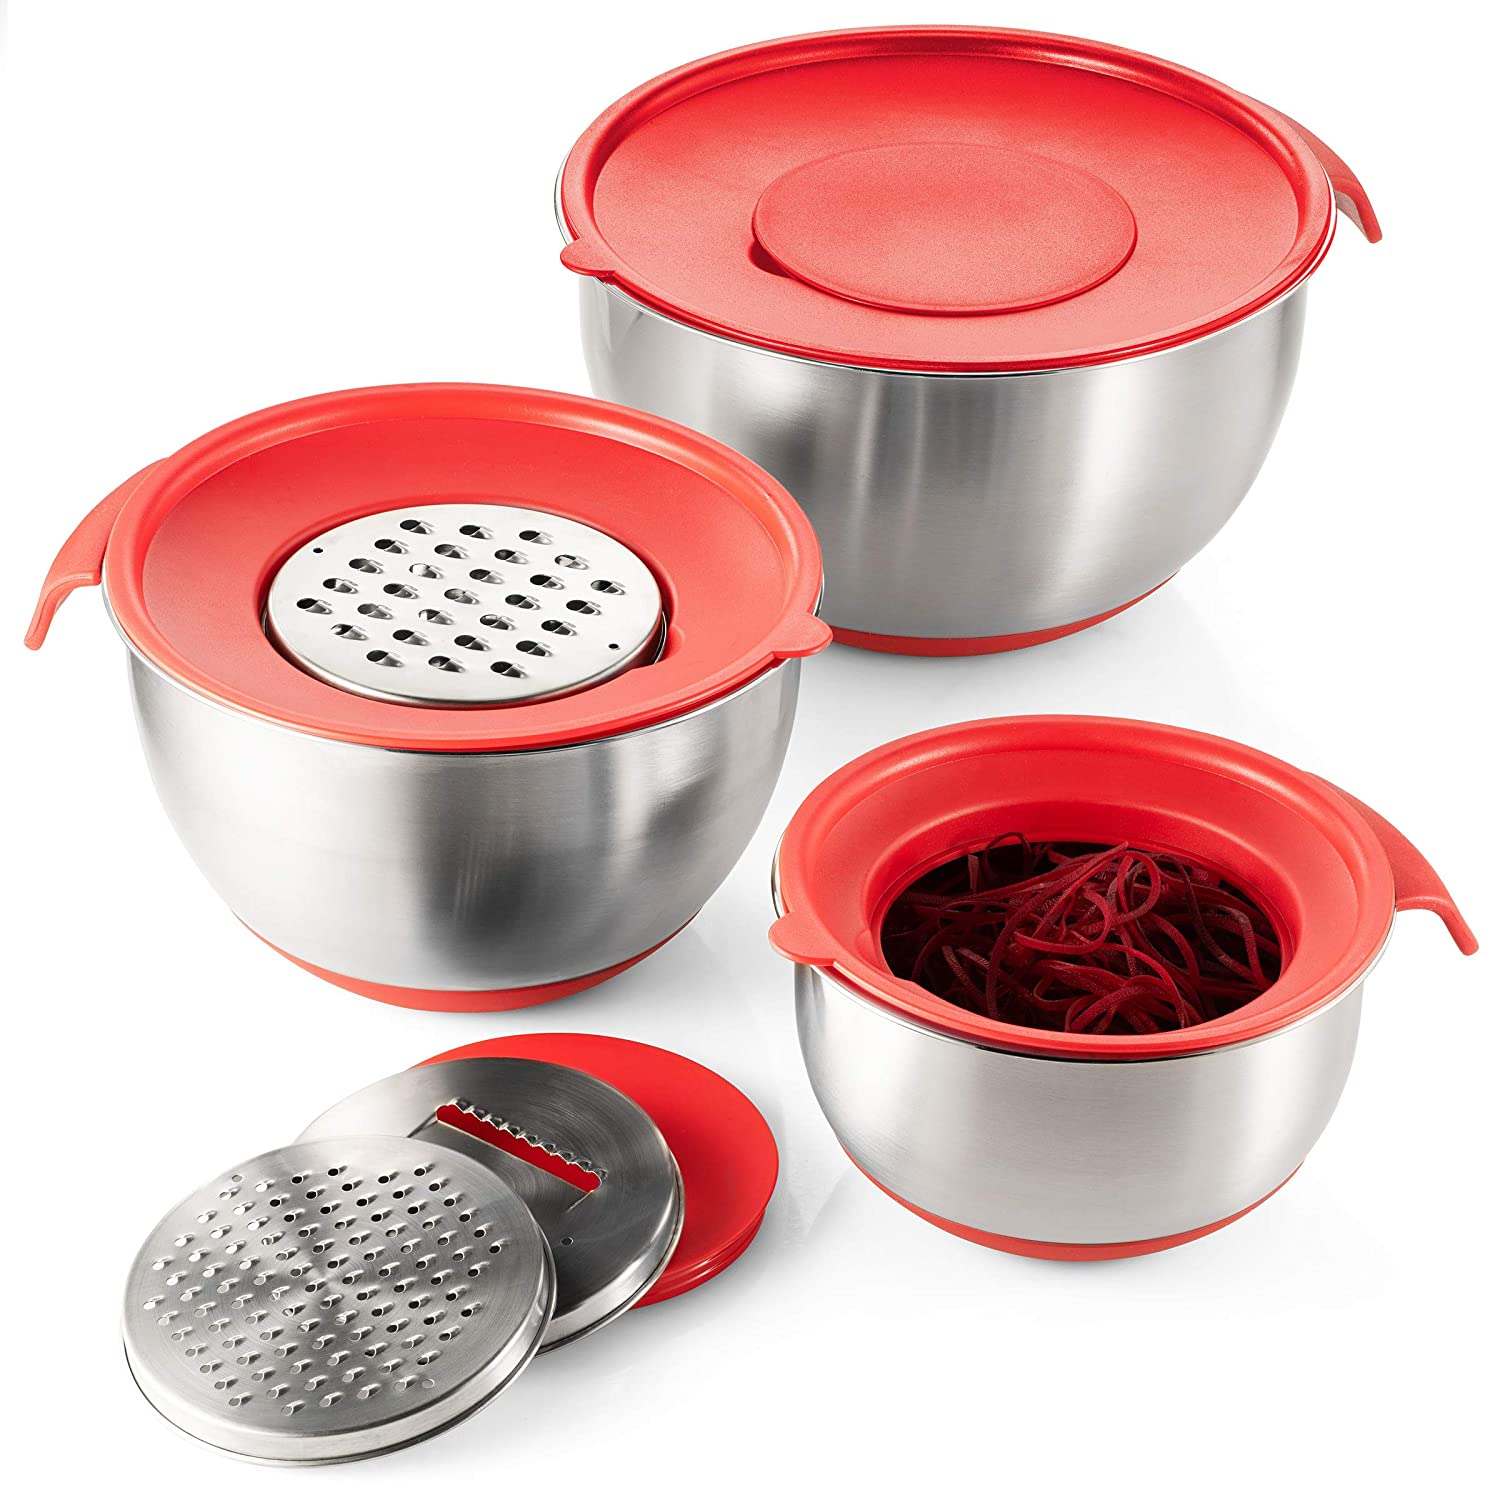 Nesting Mixing Bowls with Handle and Pour Spout Non Slip Mixing Bowls with Silicone Base Black Klee Stainless Steel Mixing Bowl Set of 3 with Grater Attachments Mixing Bowls with Airtight Lids